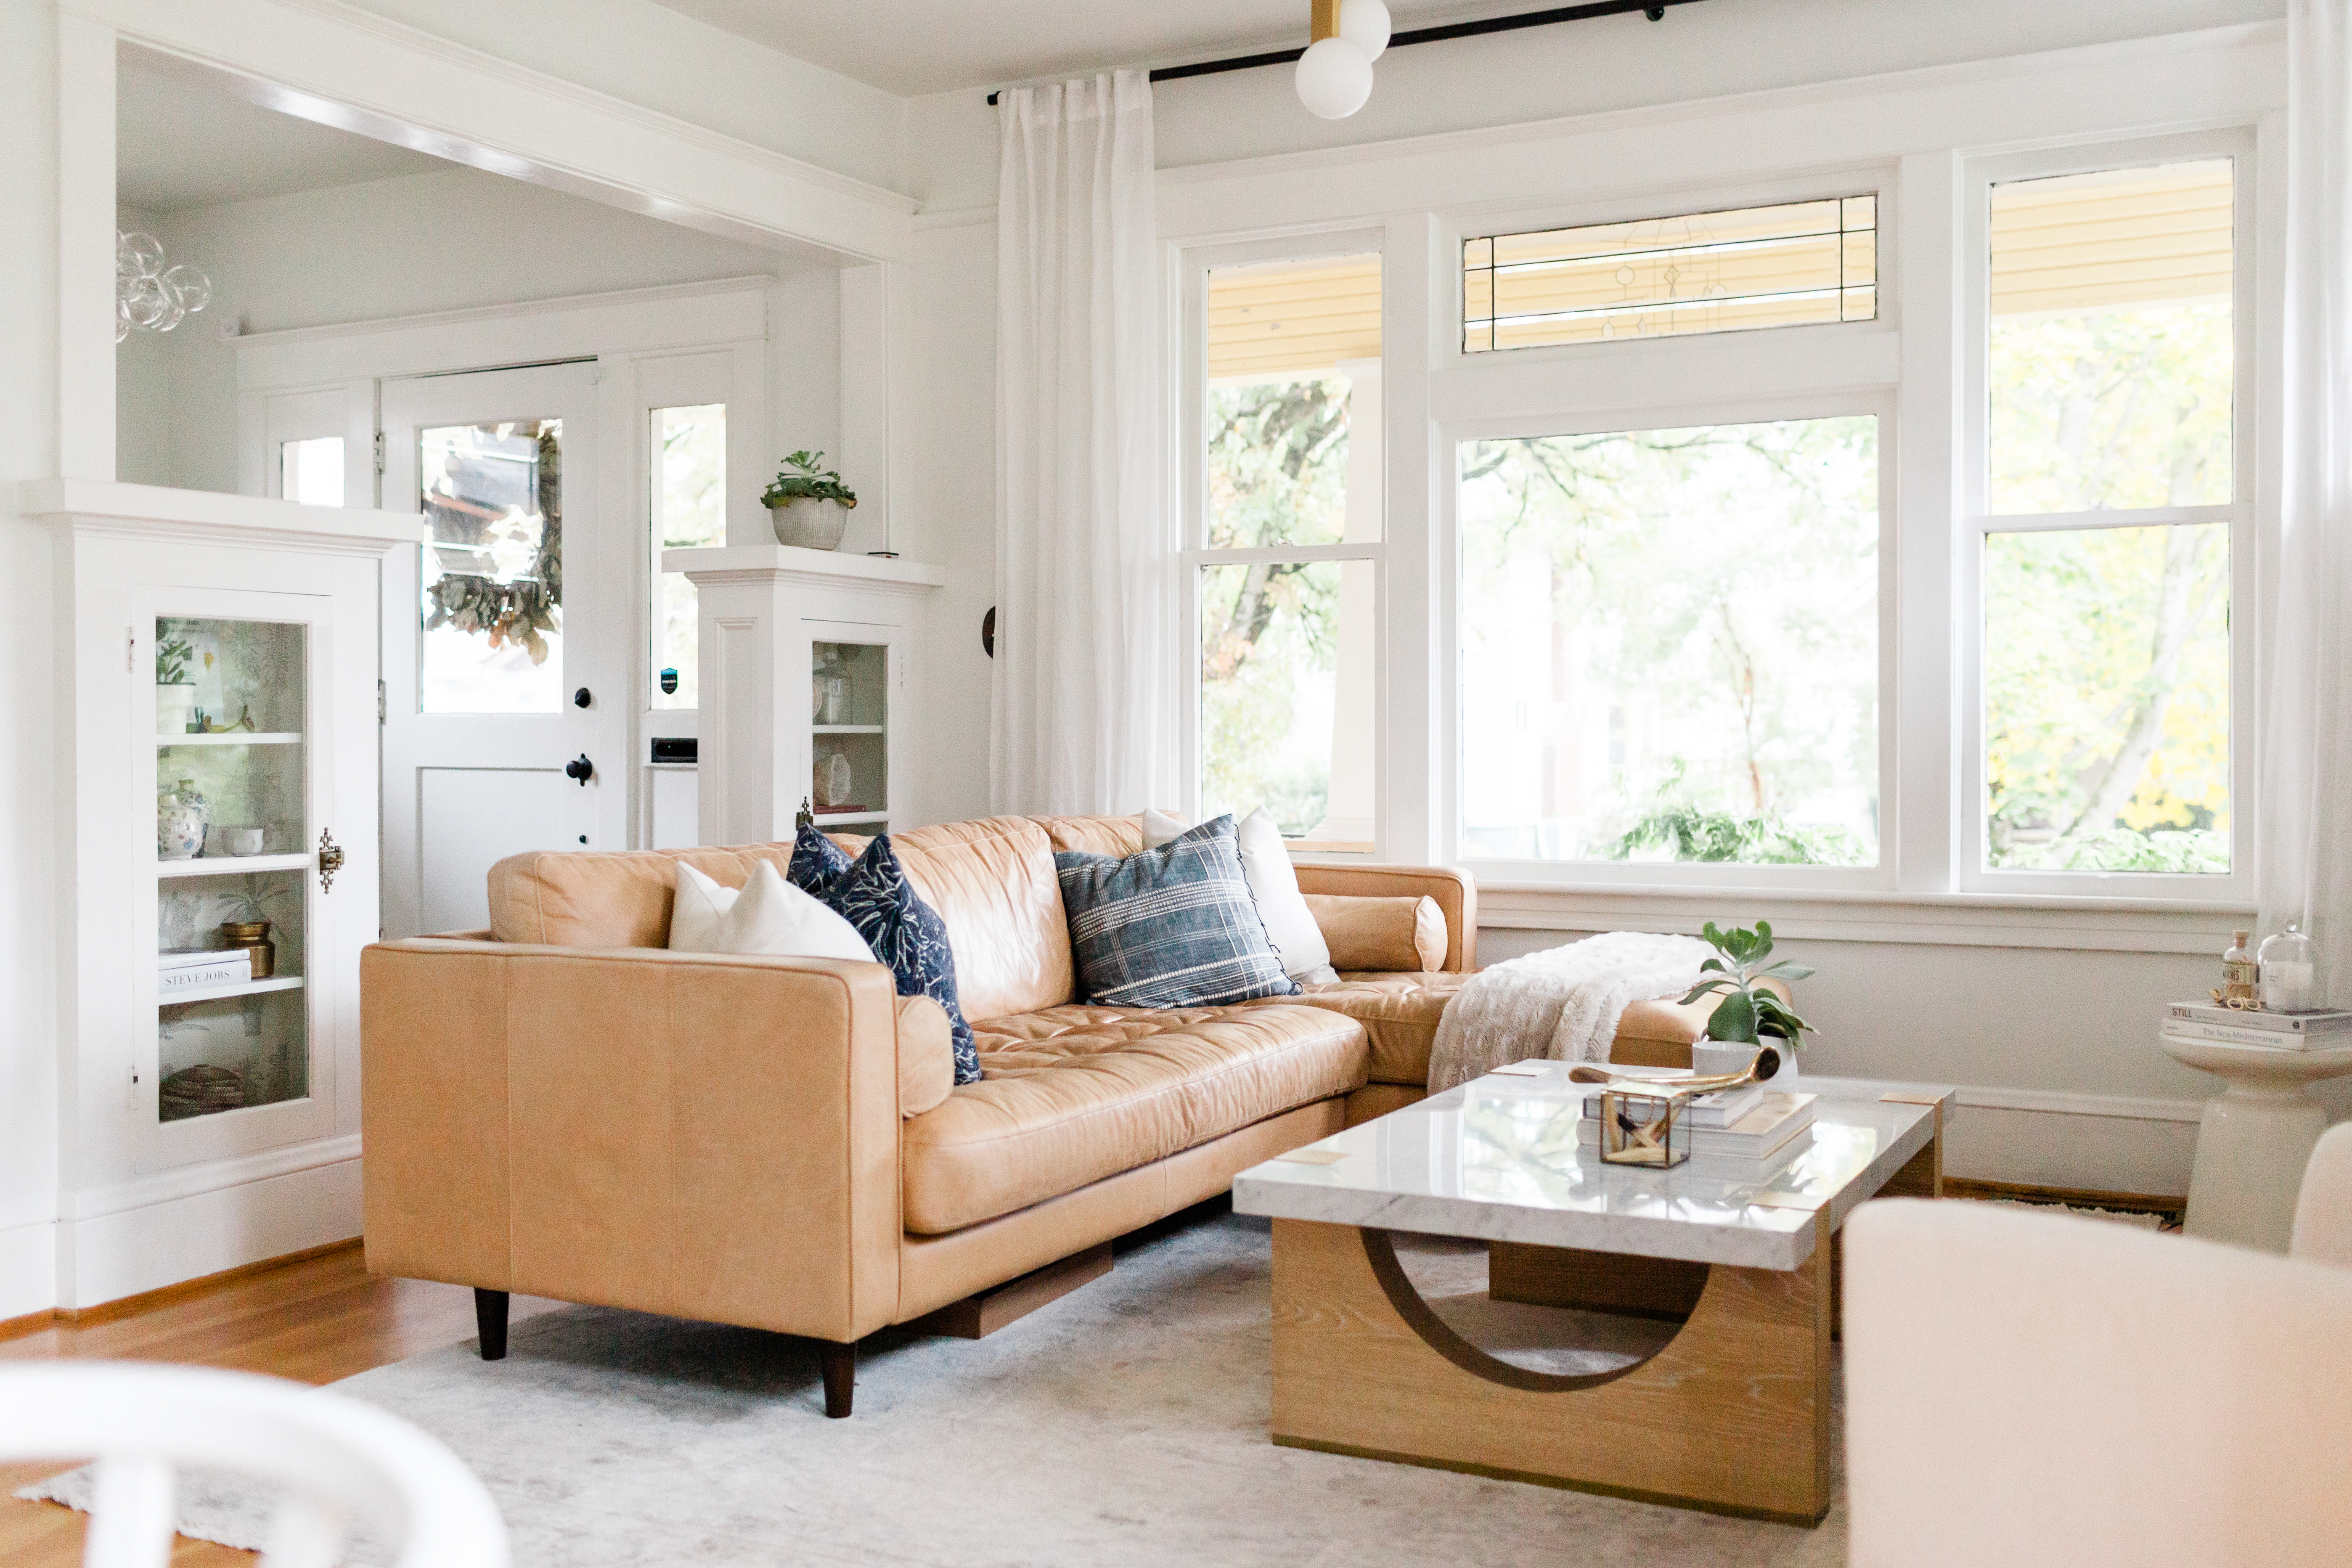 Tan leather couch in a white living room